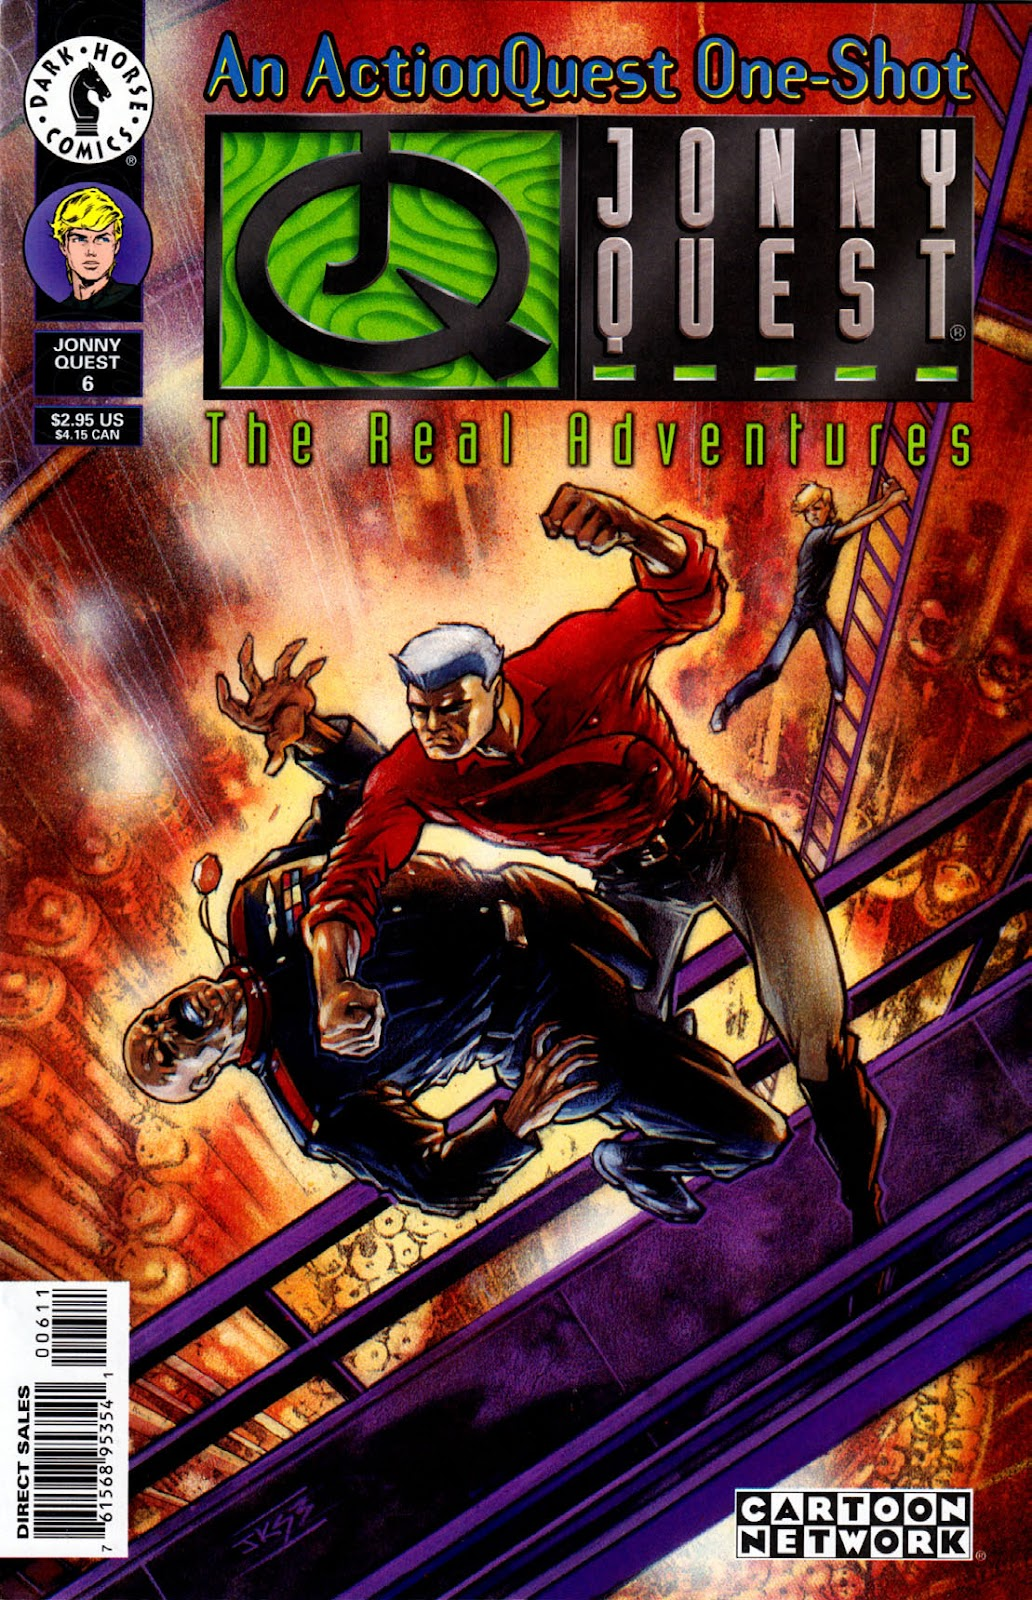 Read online The Real Adventures of Jonny Quest comic -  Issue #6 - 1